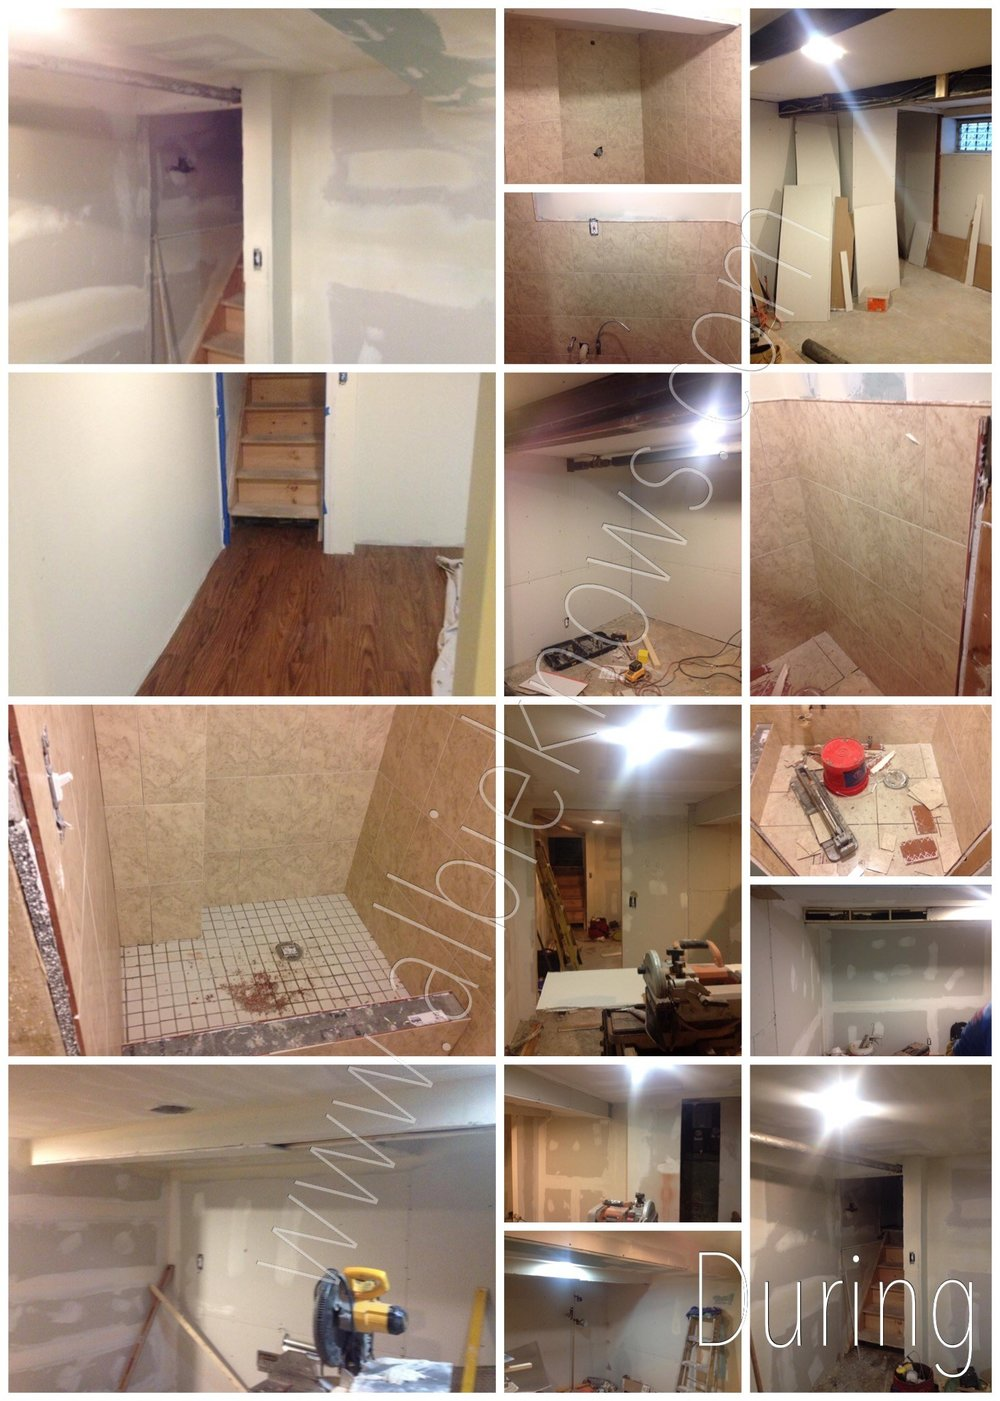 albie-knows-basement-apartment-makeover-3.jpg